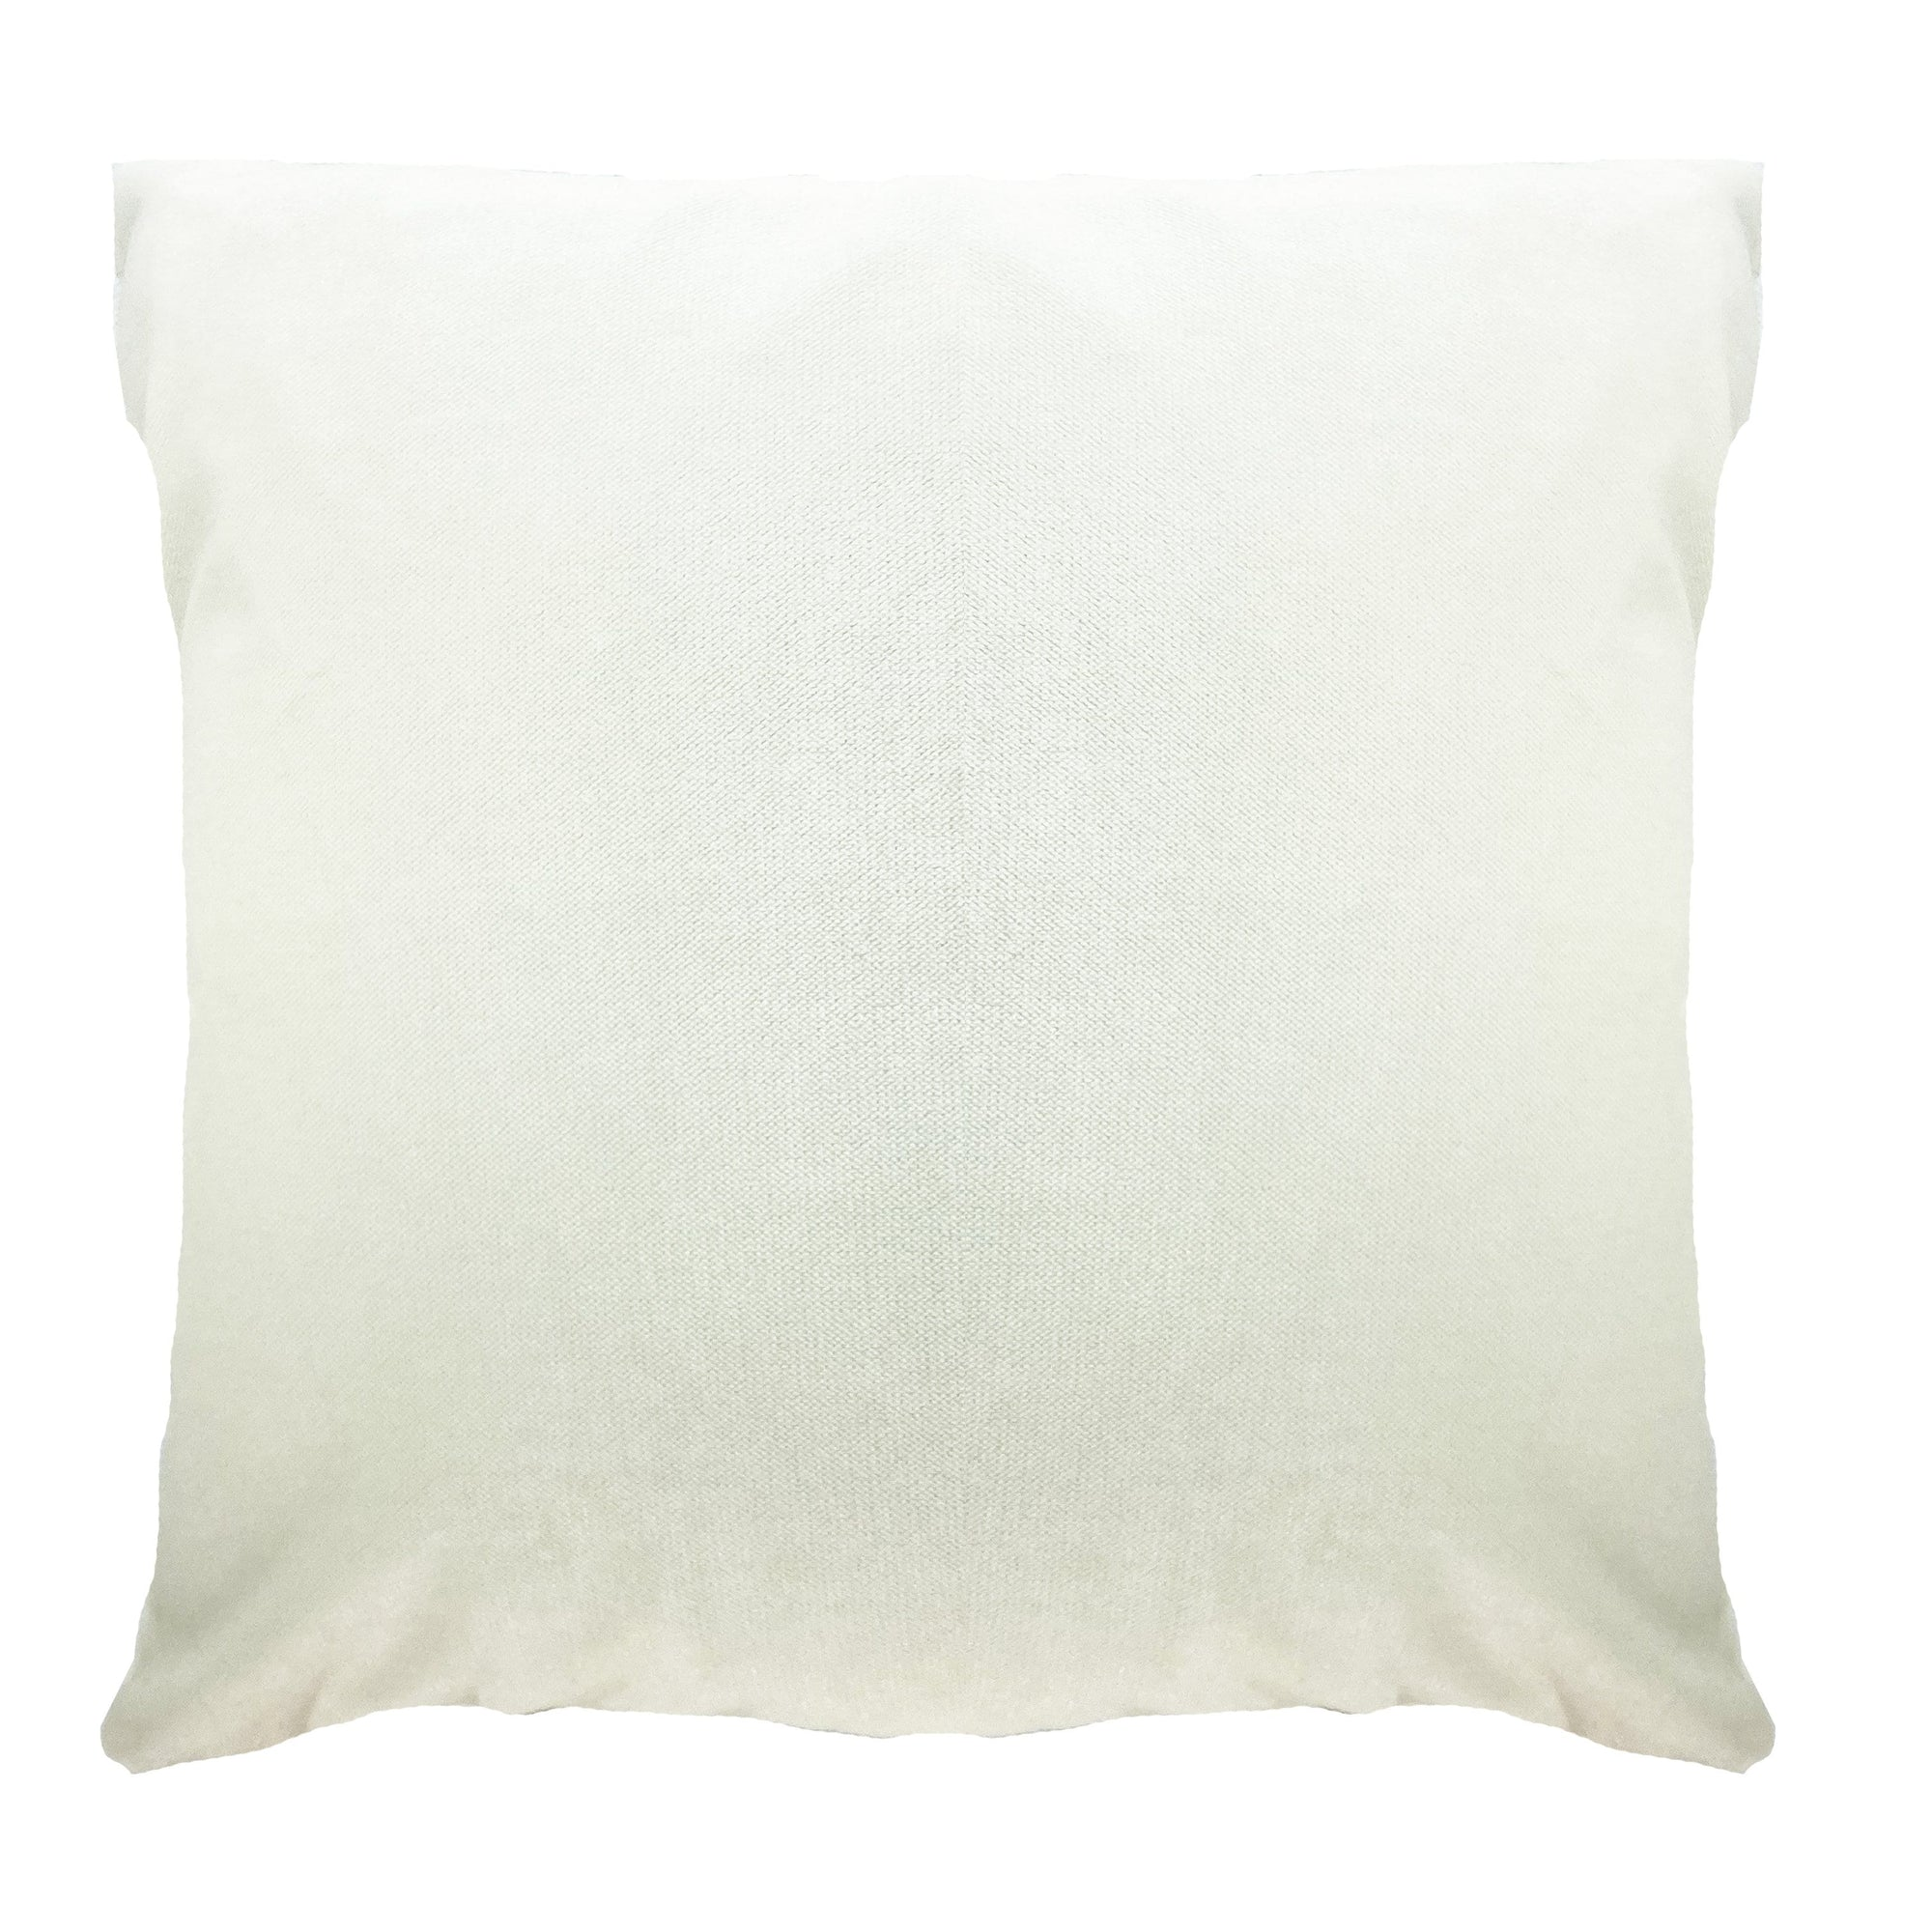 Zaina Cushion Cover